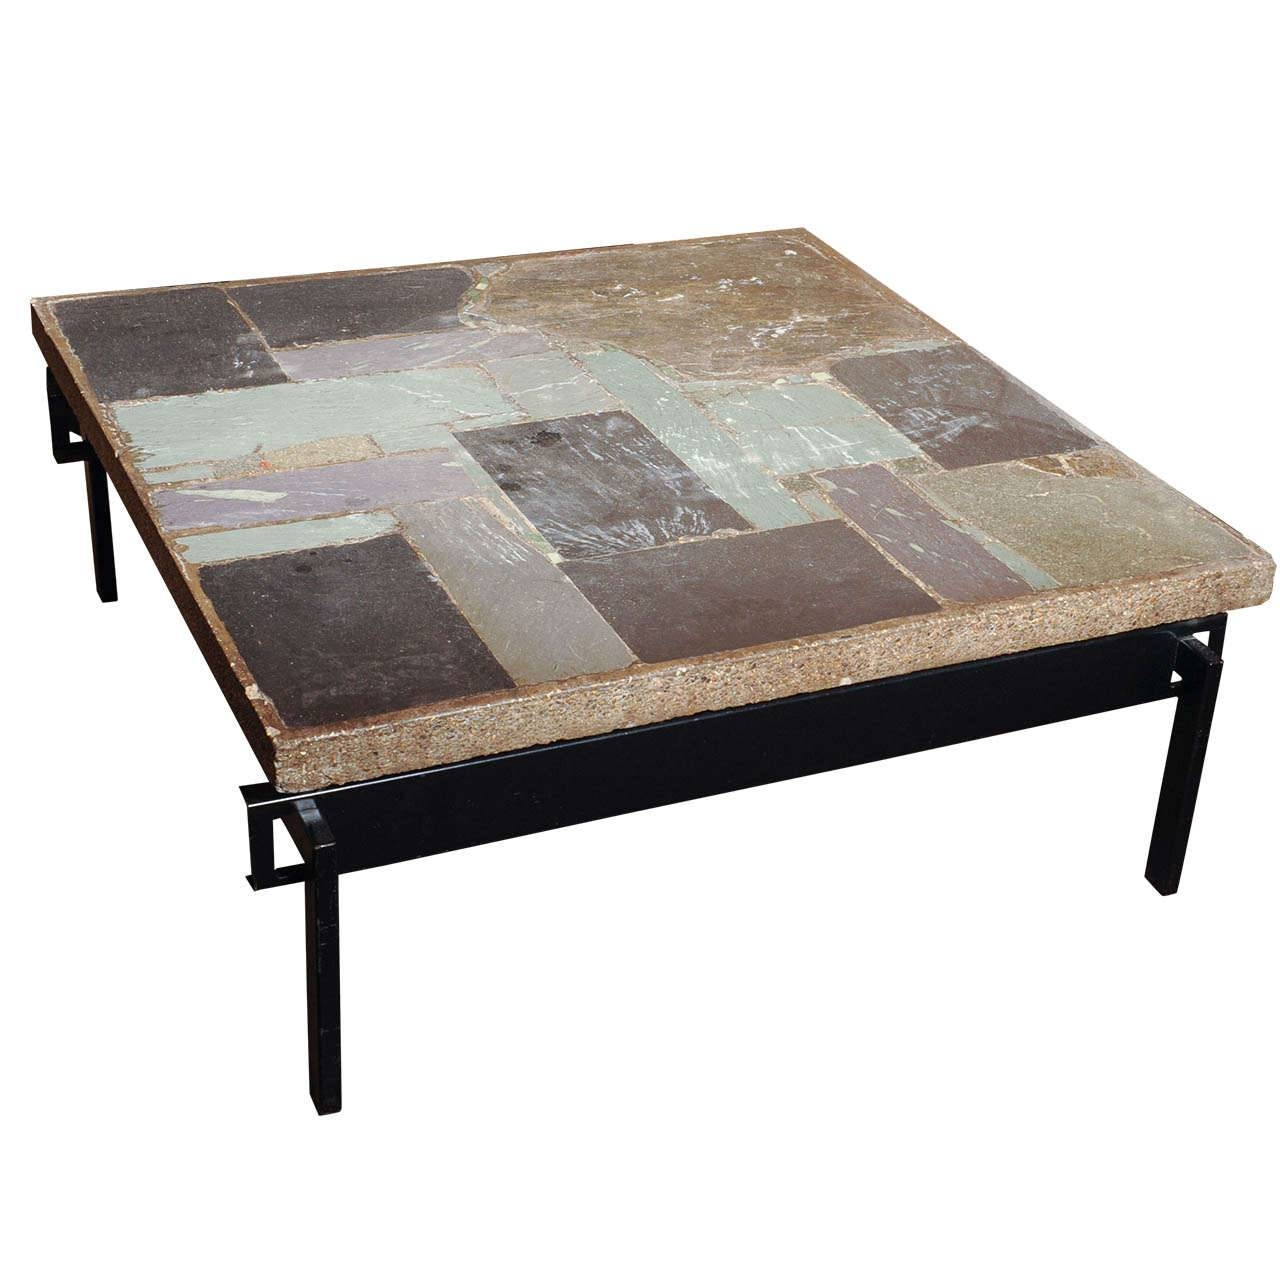 2019 Best Of Square Stone Coffee Tables